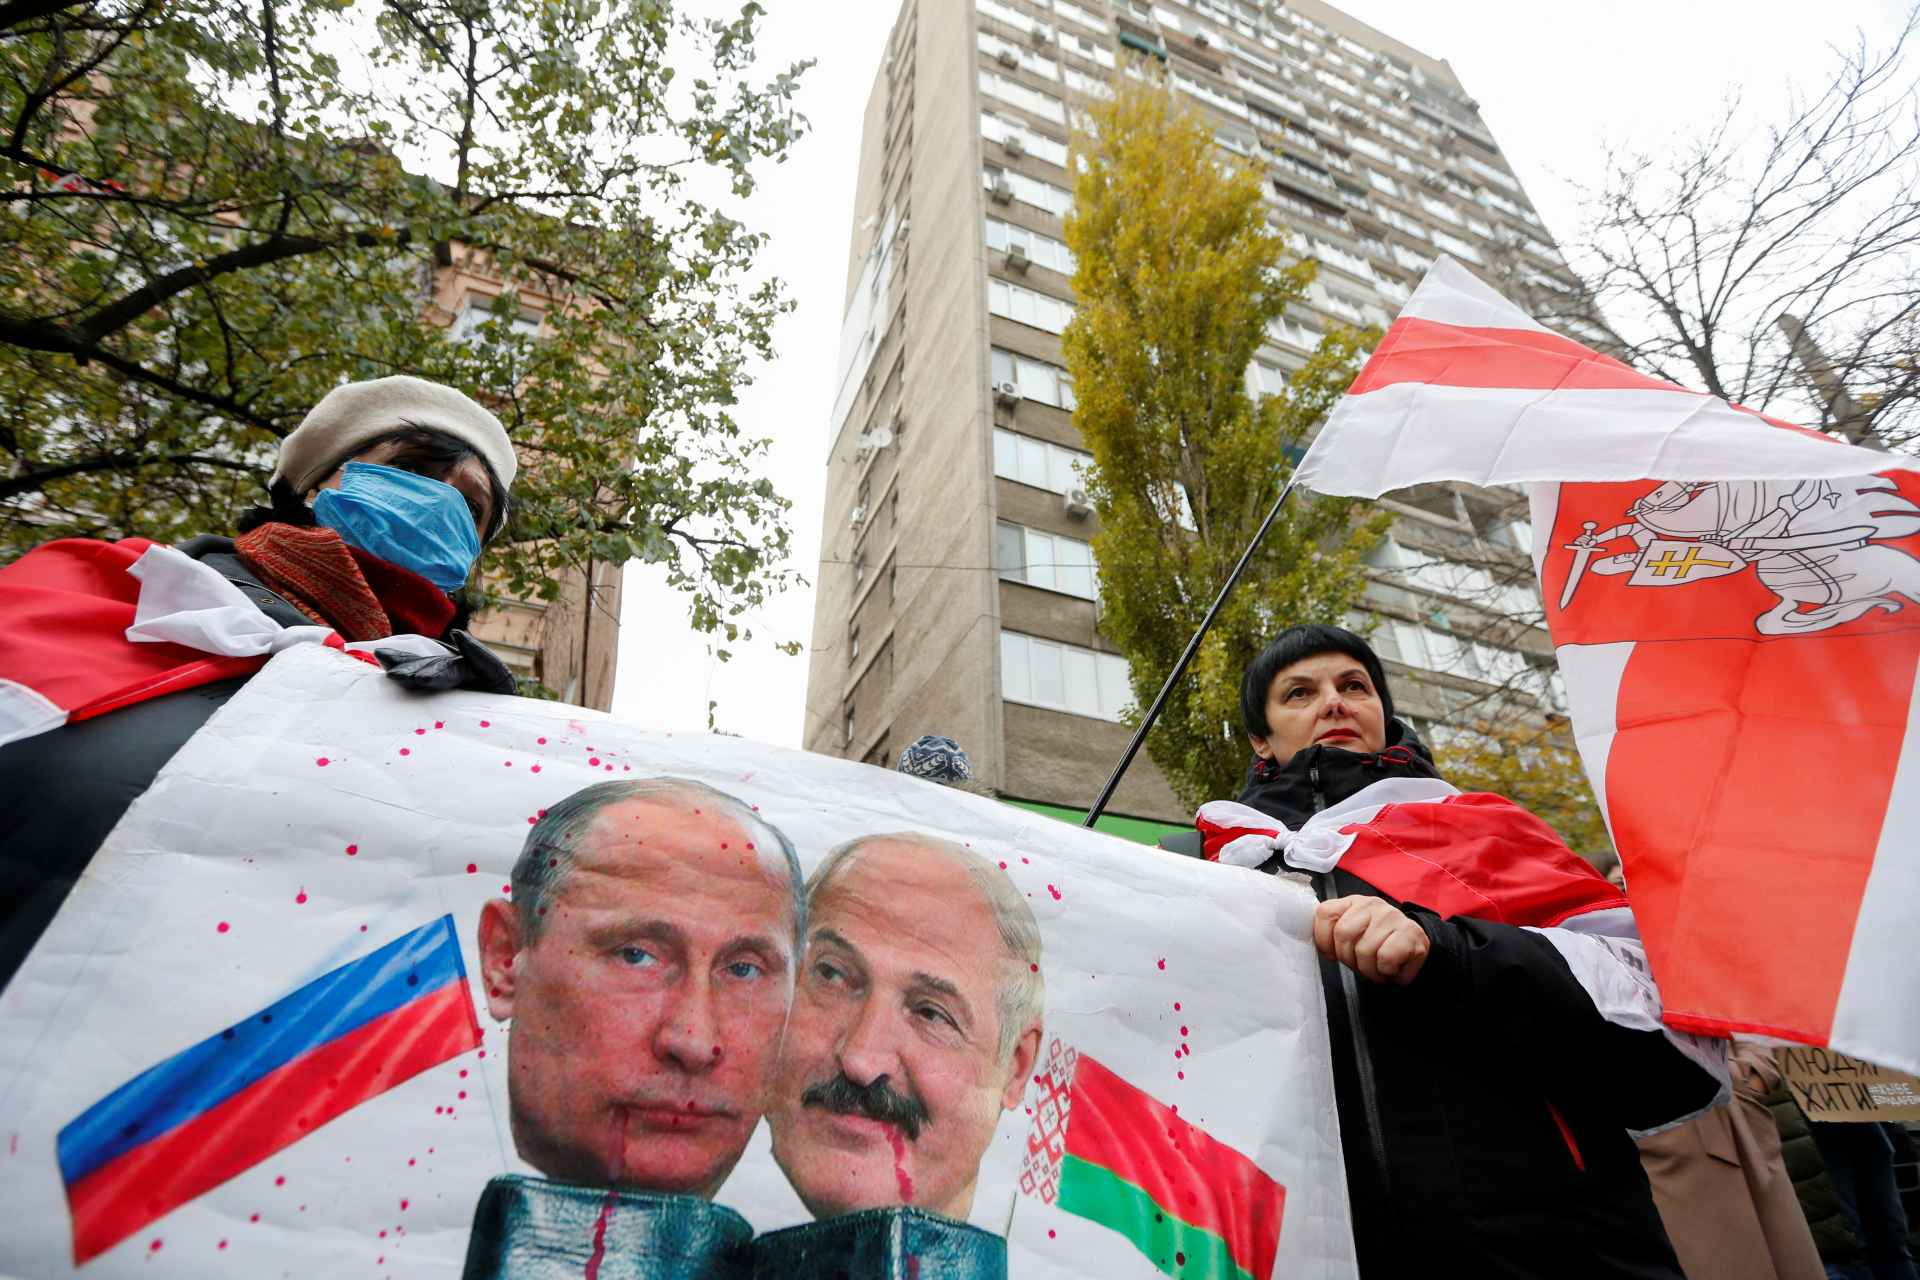 Photo: People gather to mourn the death of Belarusian anti-government protester Roman Bondarenko, who was allegedly beaten by the country's security forces in Minsk, outside the Belarusian embassy in Kyiv, Ukraine November 13, 2020. A placard displays images depicting Russian President Vladimir Putin and Belarusian President Alexander Lukashenko. Credit: REUTERS/Valentyn Ogirenko